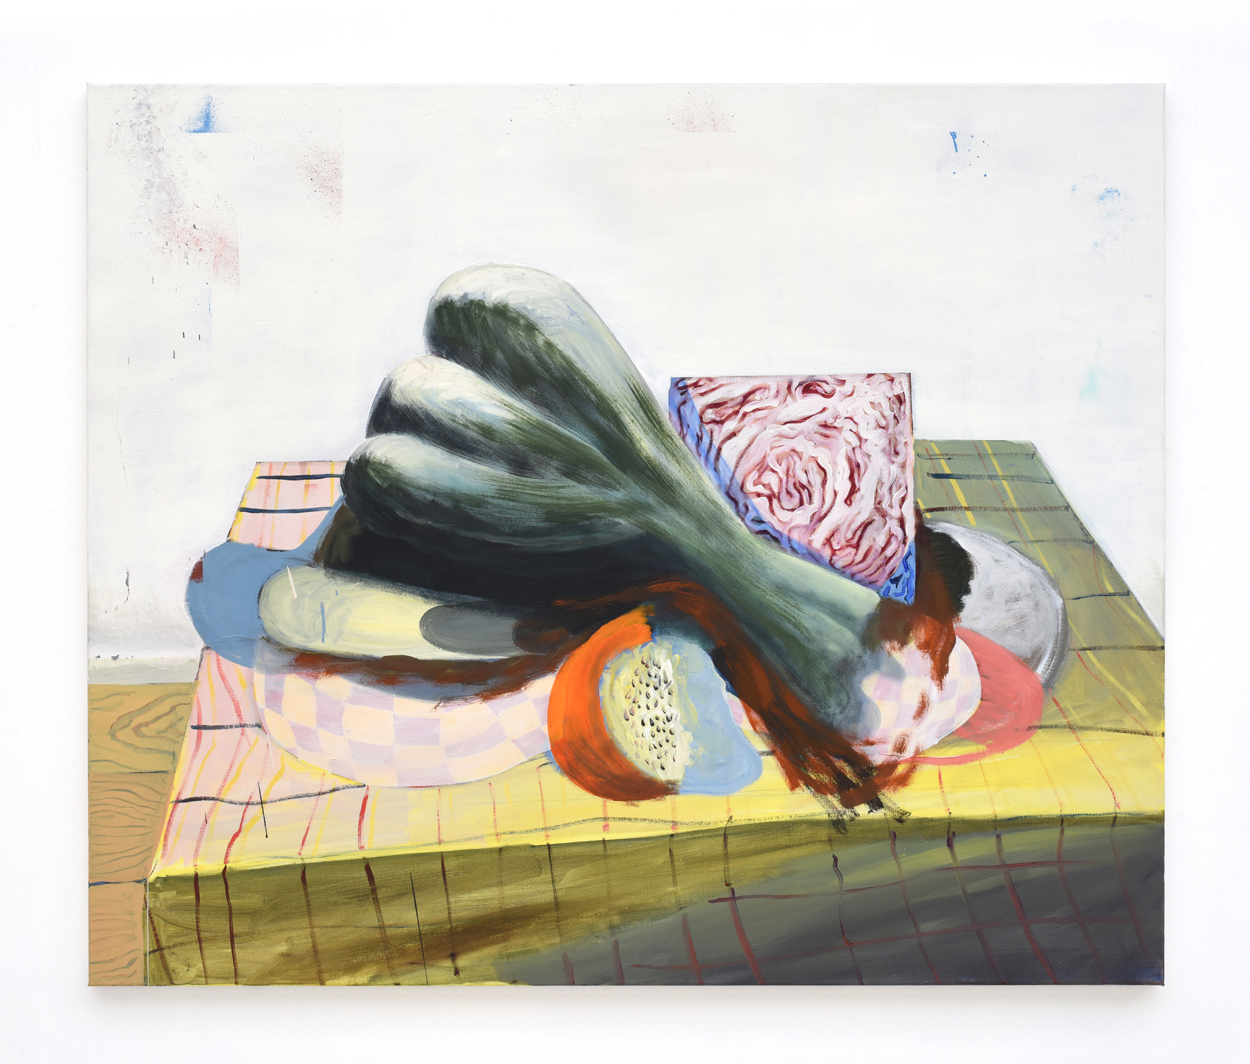 DECLERCQ - Still_Life_with_red_cabbage_and_jungle_fruit_2018_100x120cm